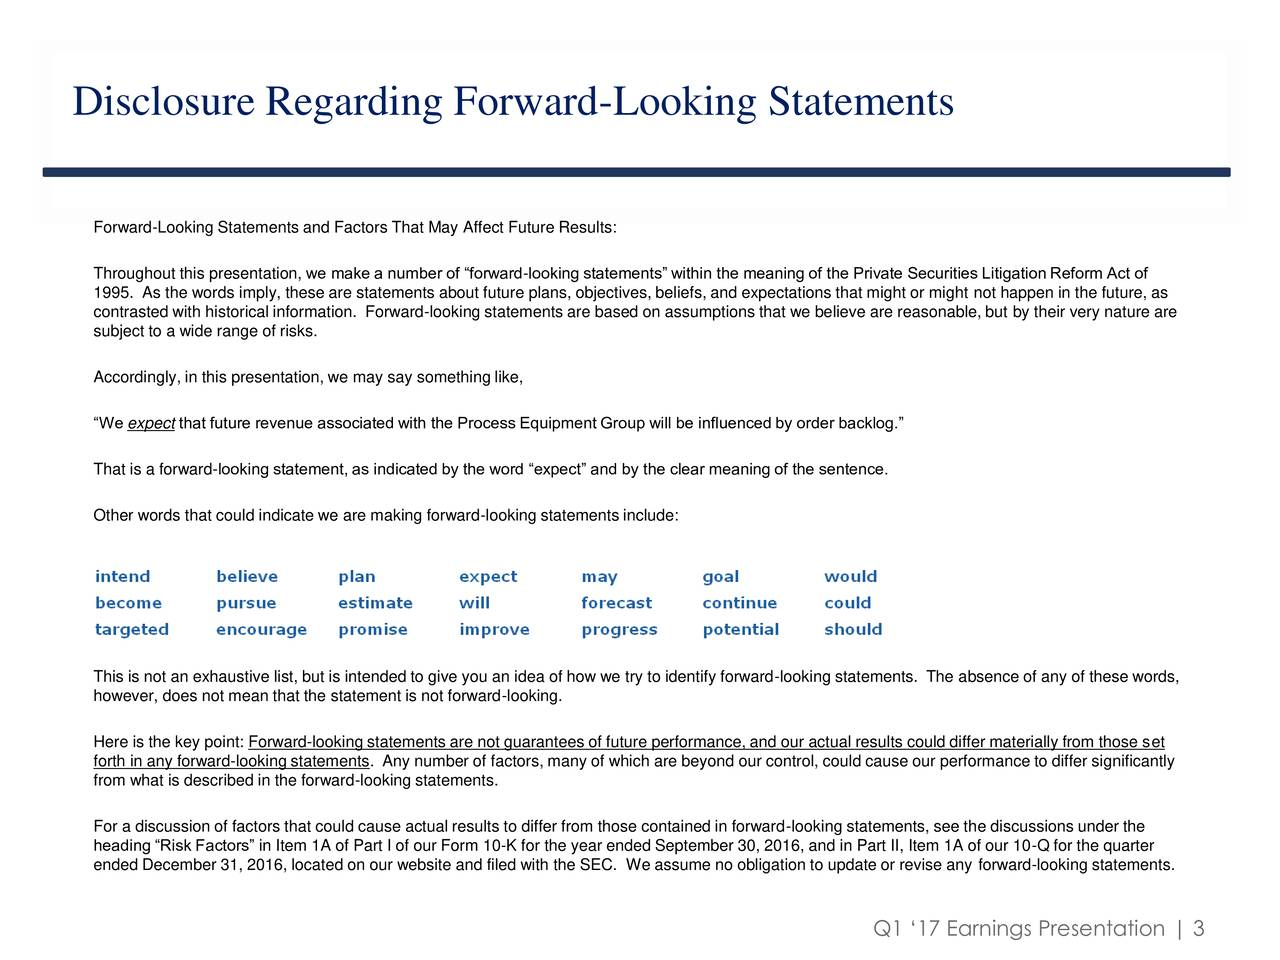 Forward-Looking Statements and Factors That May Affect Future Results: Throughout this presentation, we make a number of forward-looking statements within the meaning of the Private Securities Litigation Reform Act of 1995. As the words imply, these are statements about future plans, objectives, beliefs, and expectations that might or might not happen in the future, as contrasted with historical information. Forward-looking statements are based on assumptions that we believe are reasonable, but by their very nature are subject to a wide range of risks. Accordingly, in this presentation, we may say something like, We expect that future revenue associated with the Process Equipment Group will be influenced by order backlog. That is a forward-looking statement, as indicated by the word expect and by the clear meaning of the sentence. Other words that could indicate we are making forward-looking statements include: This is not an exhaustive list, but is intended to give you an idea of how we try to identify forward-looking statements. The absence of any of these words, however, does not mean that the statement is not forward-looking. Here is the key point: Forward-looking statements are not guarantees of future performance, and our actual results could differ materially from those set forth in any forward-looking statements. Any number of factors, many of which are beyond our control, could cause our performance to differ significantly from what is described in the forward-looking statements. For a discussion of factors that could cause actual results to differ from those contained in forward-looking statements, see the discussions under the heading Risk Factors in Item 1A of Part I of our Form 10-K for the year ended September 30, 2016, and in Part II, Item 1A of our 10-Q for the quarter ended December 31, 2016, located on our website and filed with the SEC. We assume no obligation to update or revise any forward-looking statements. Q1 17 Earnings Presentation | 3